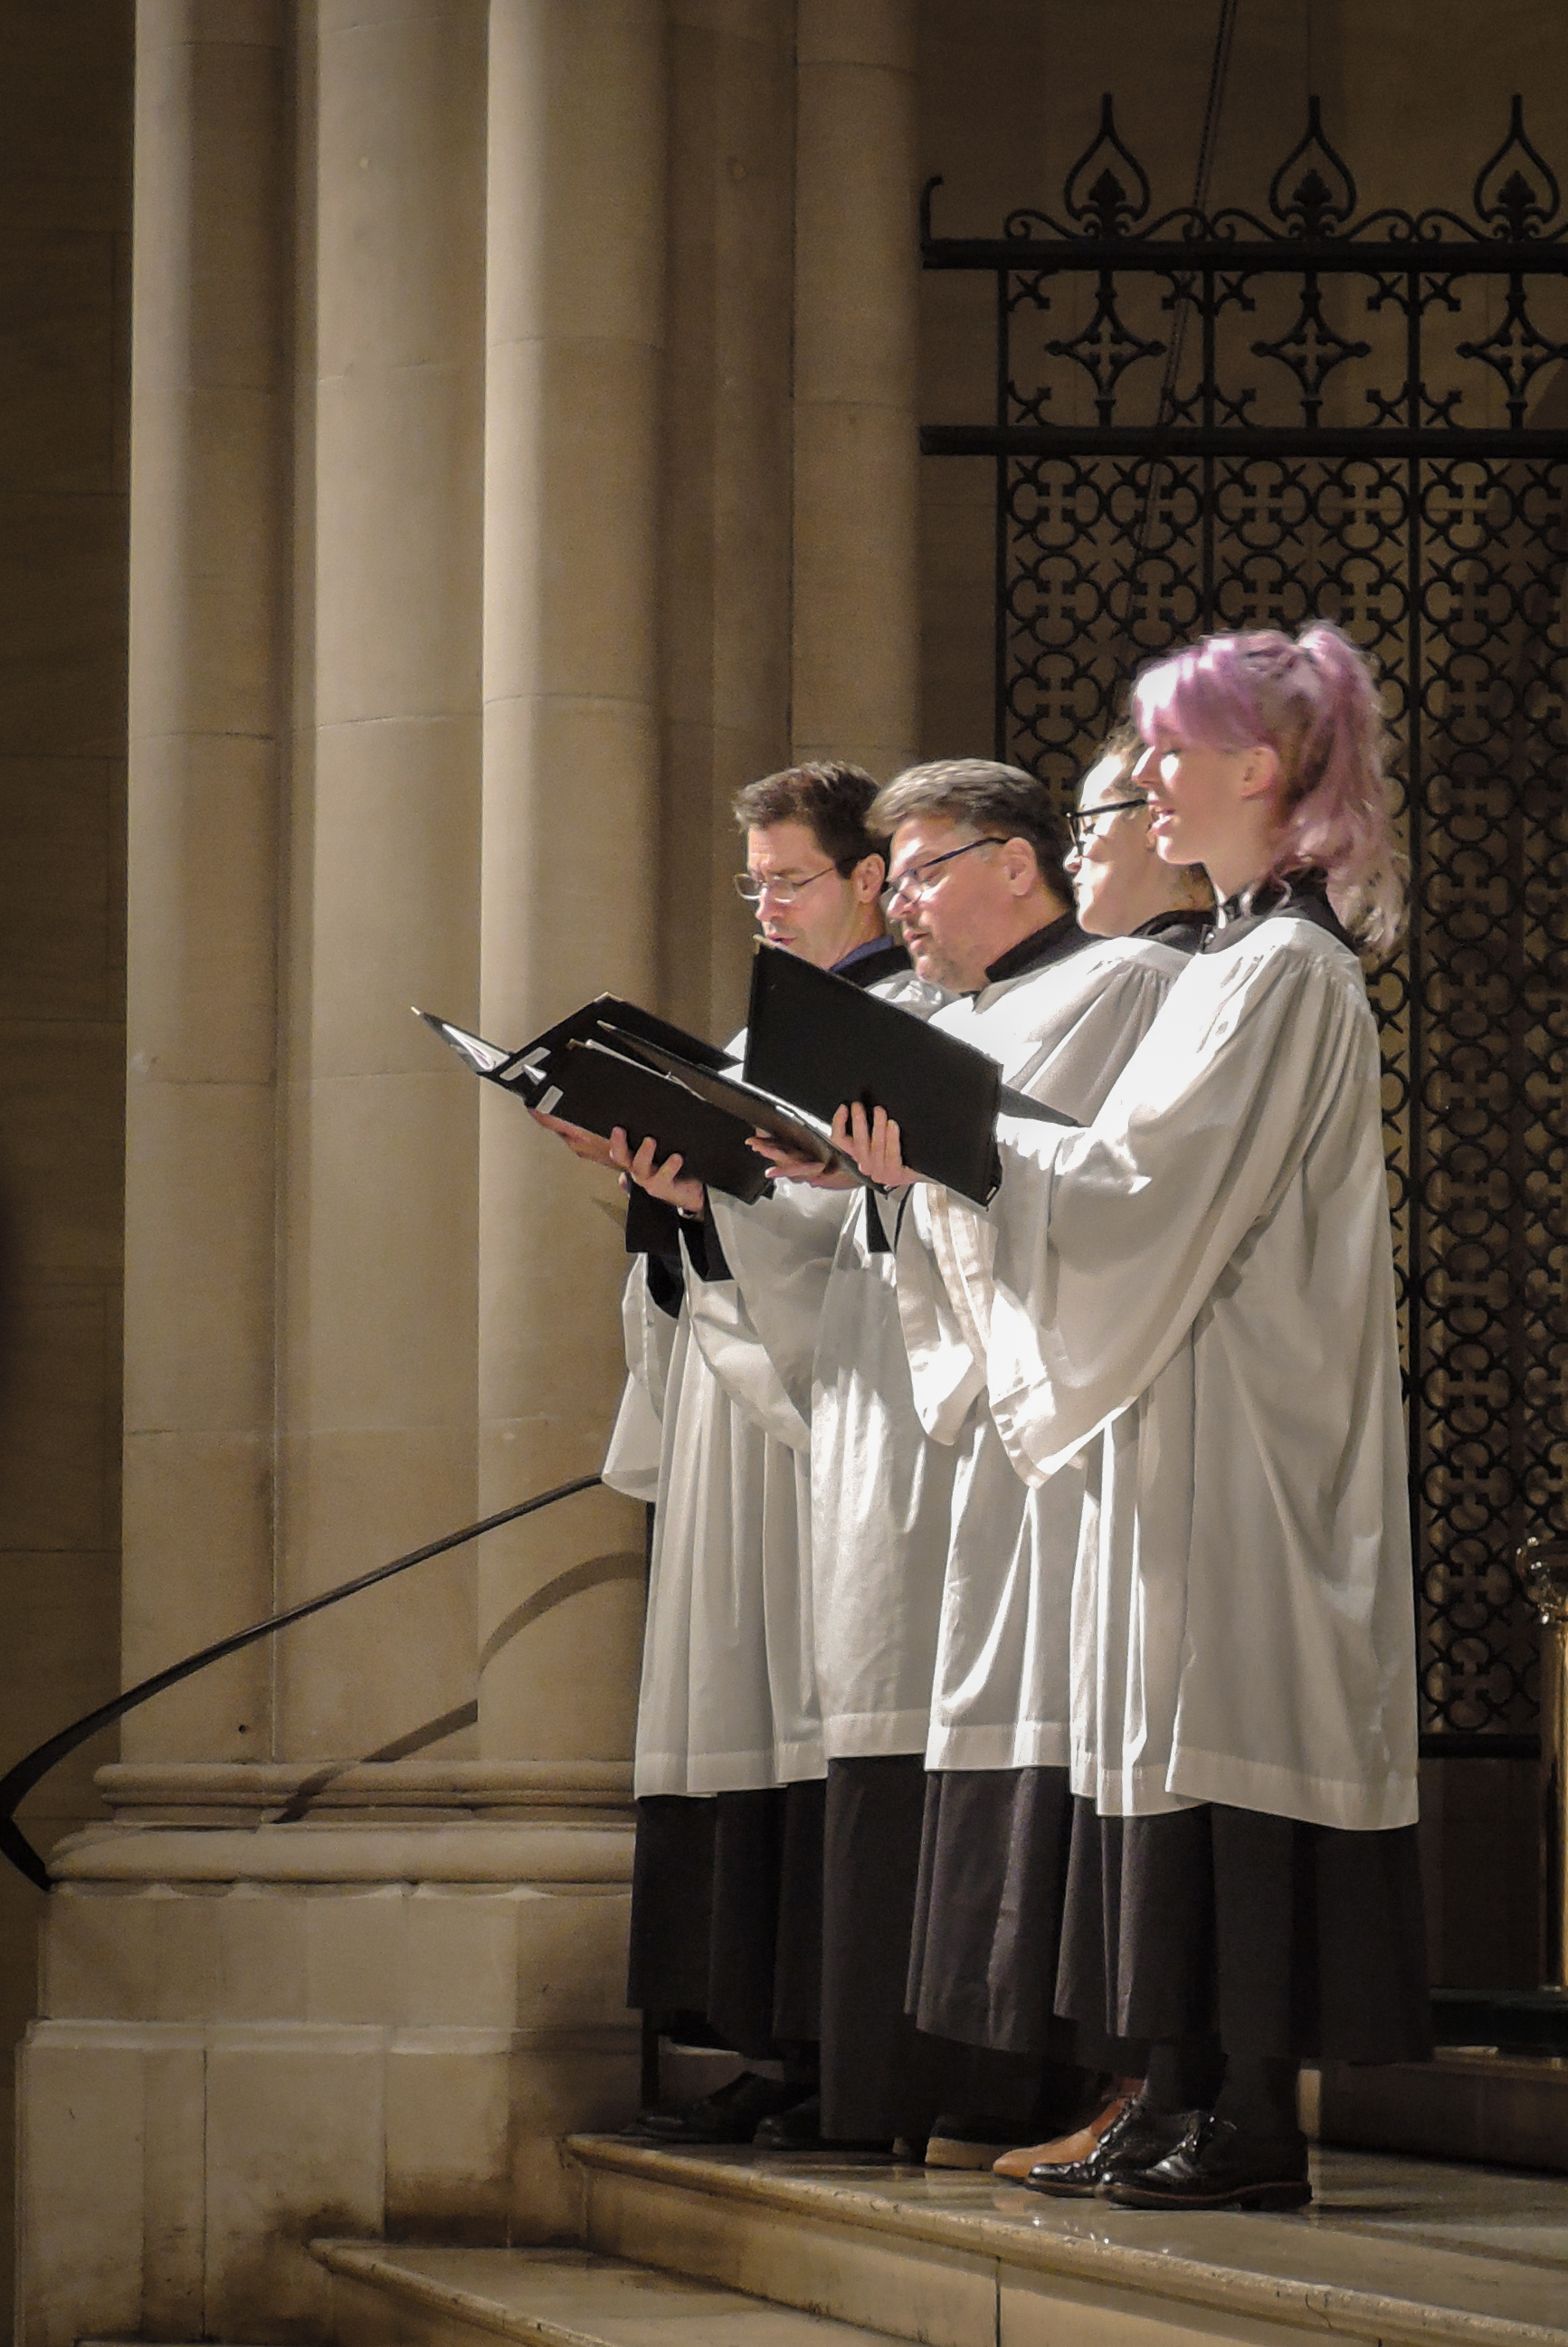 At Solemn Evensong on Candlemas Eve, a quartet sang the canticles and a motet   .